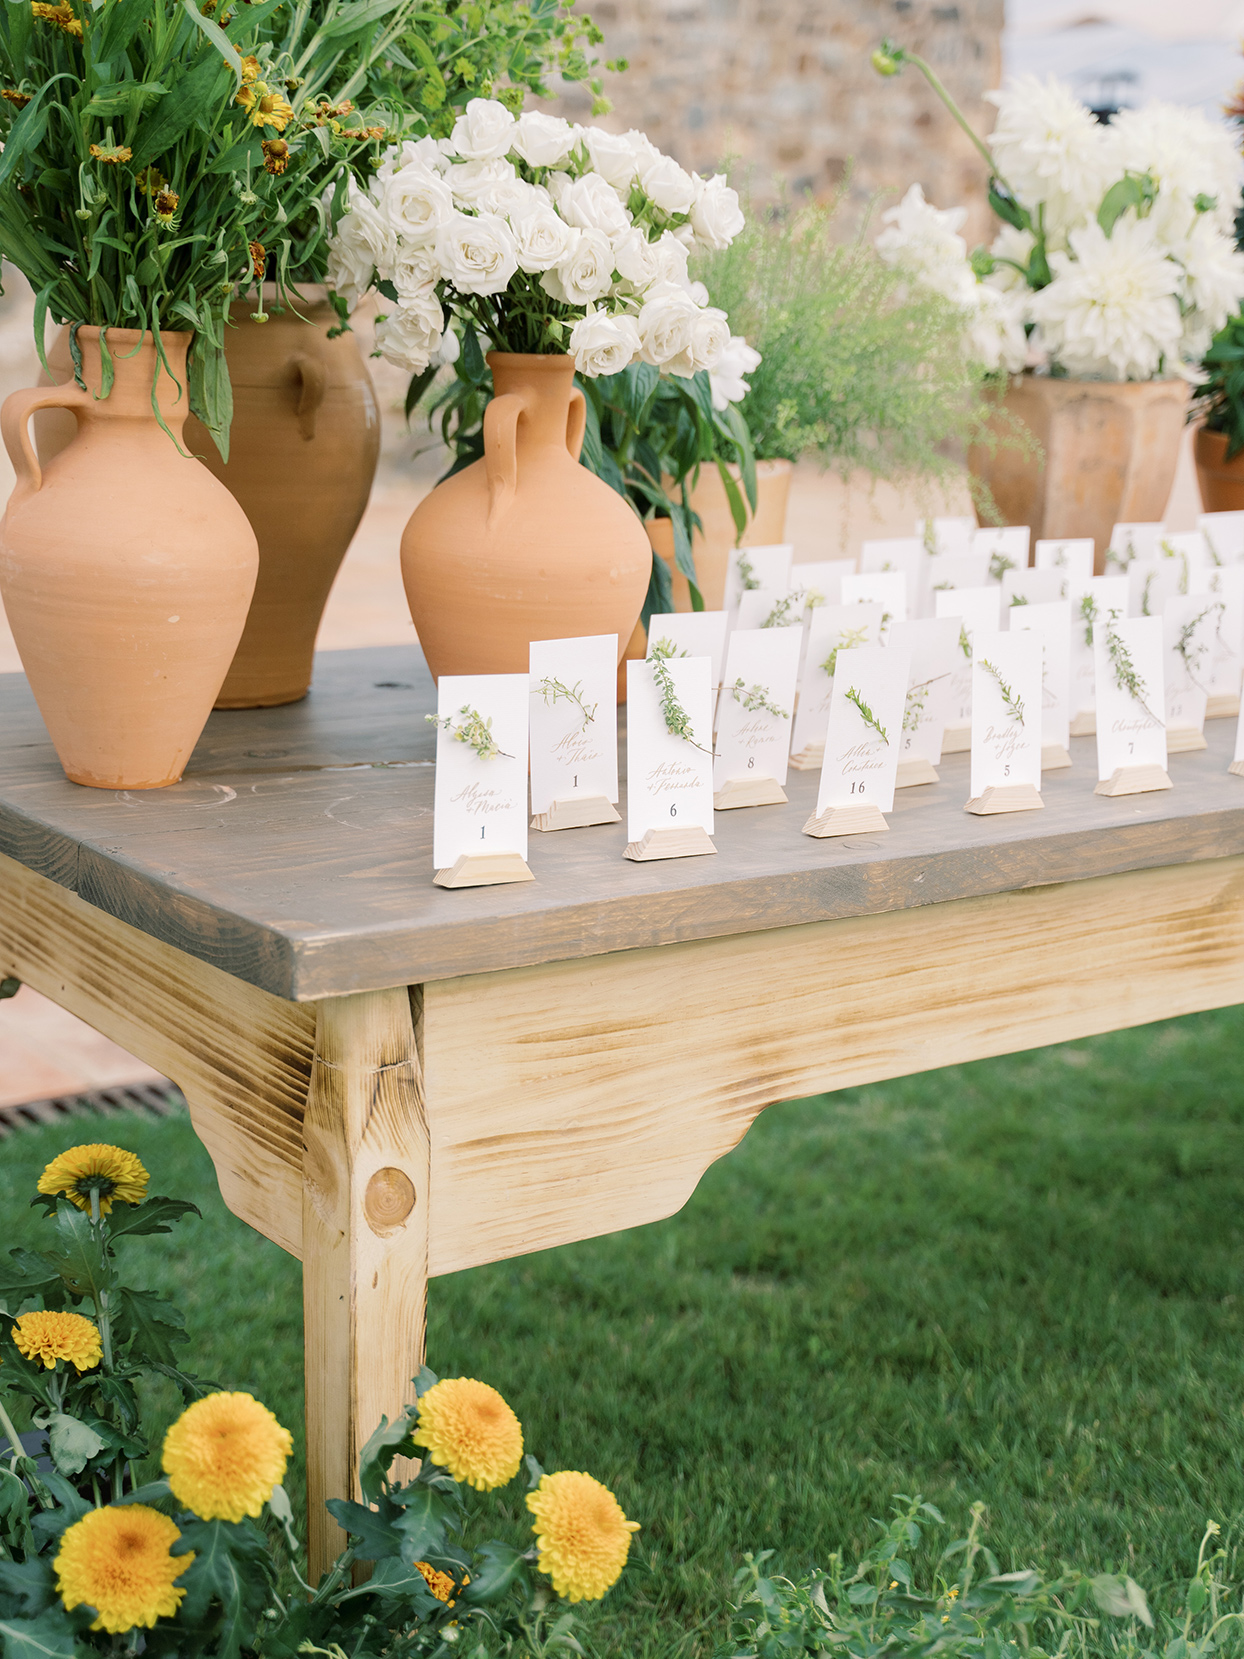 alyssa macia wedding escort cards on wooden table